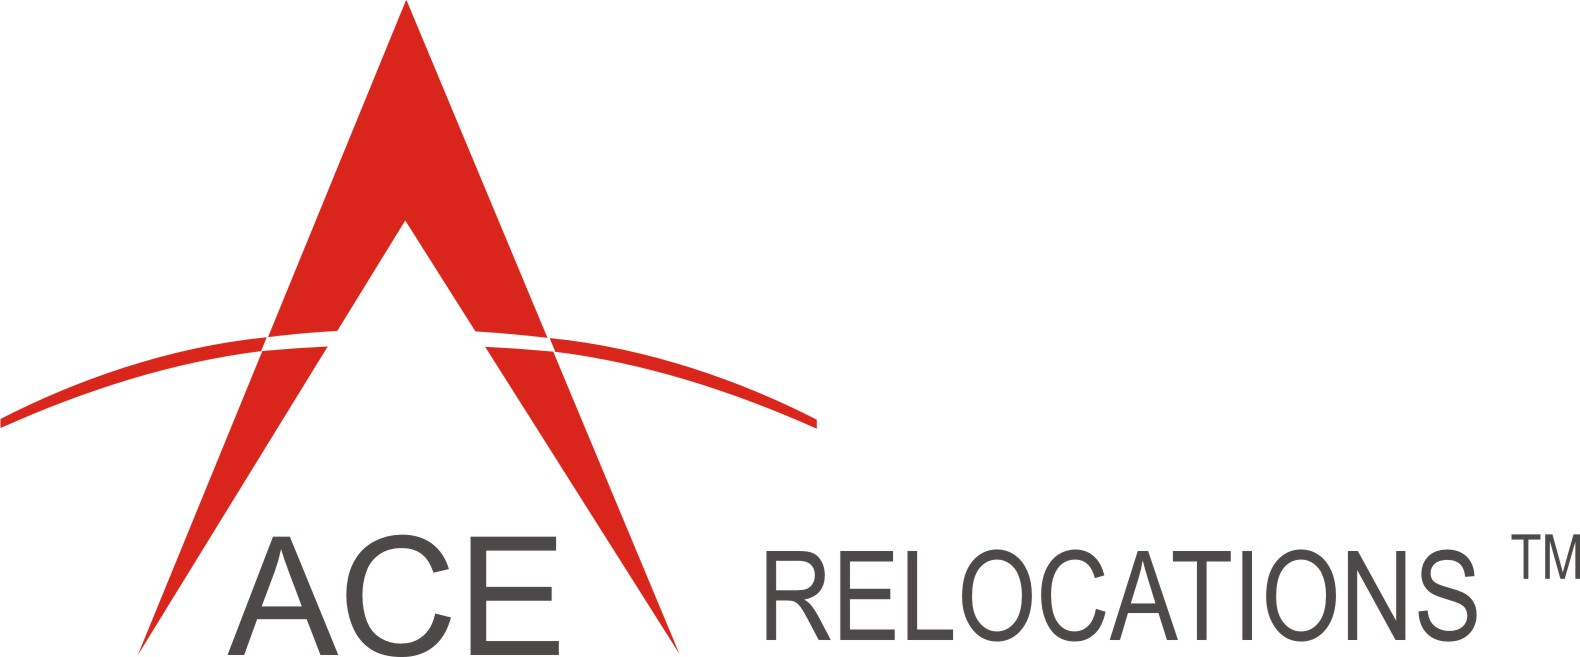 Ace Relocations Call 07930447125